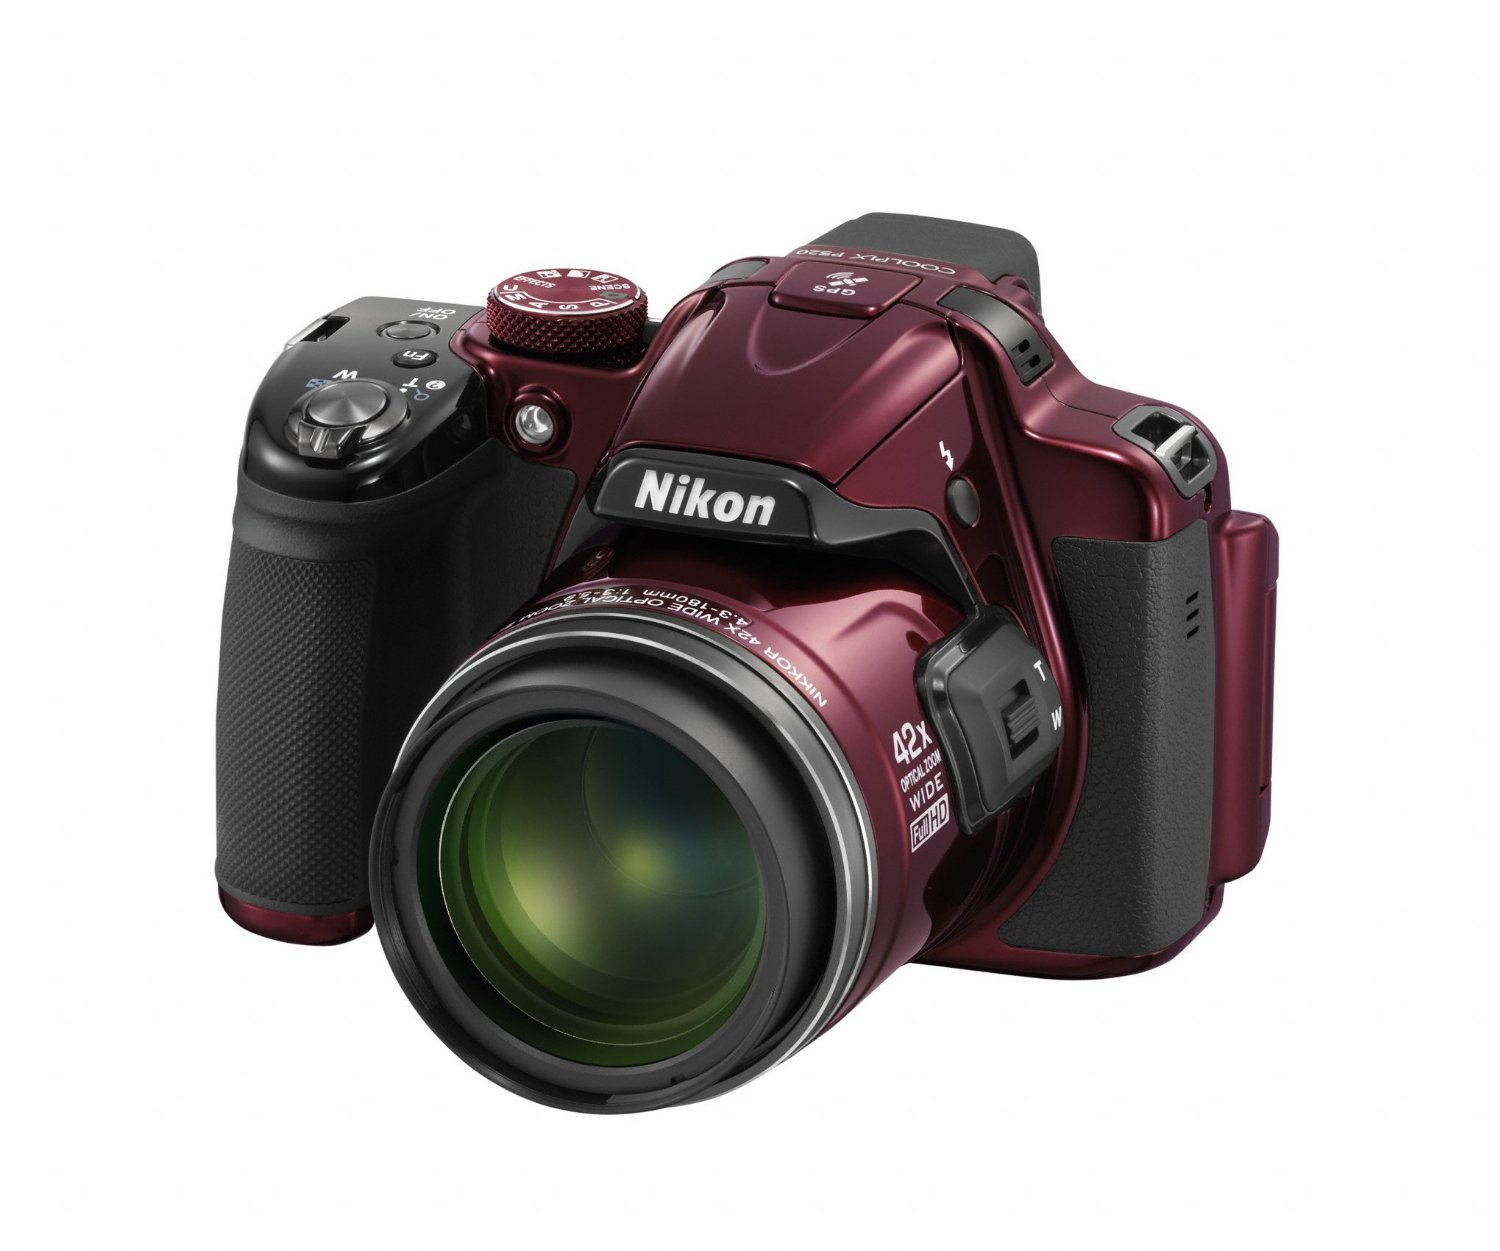 Nikon CoolPix P520 , L820 , S9500 was announced on January 29, 2013 at